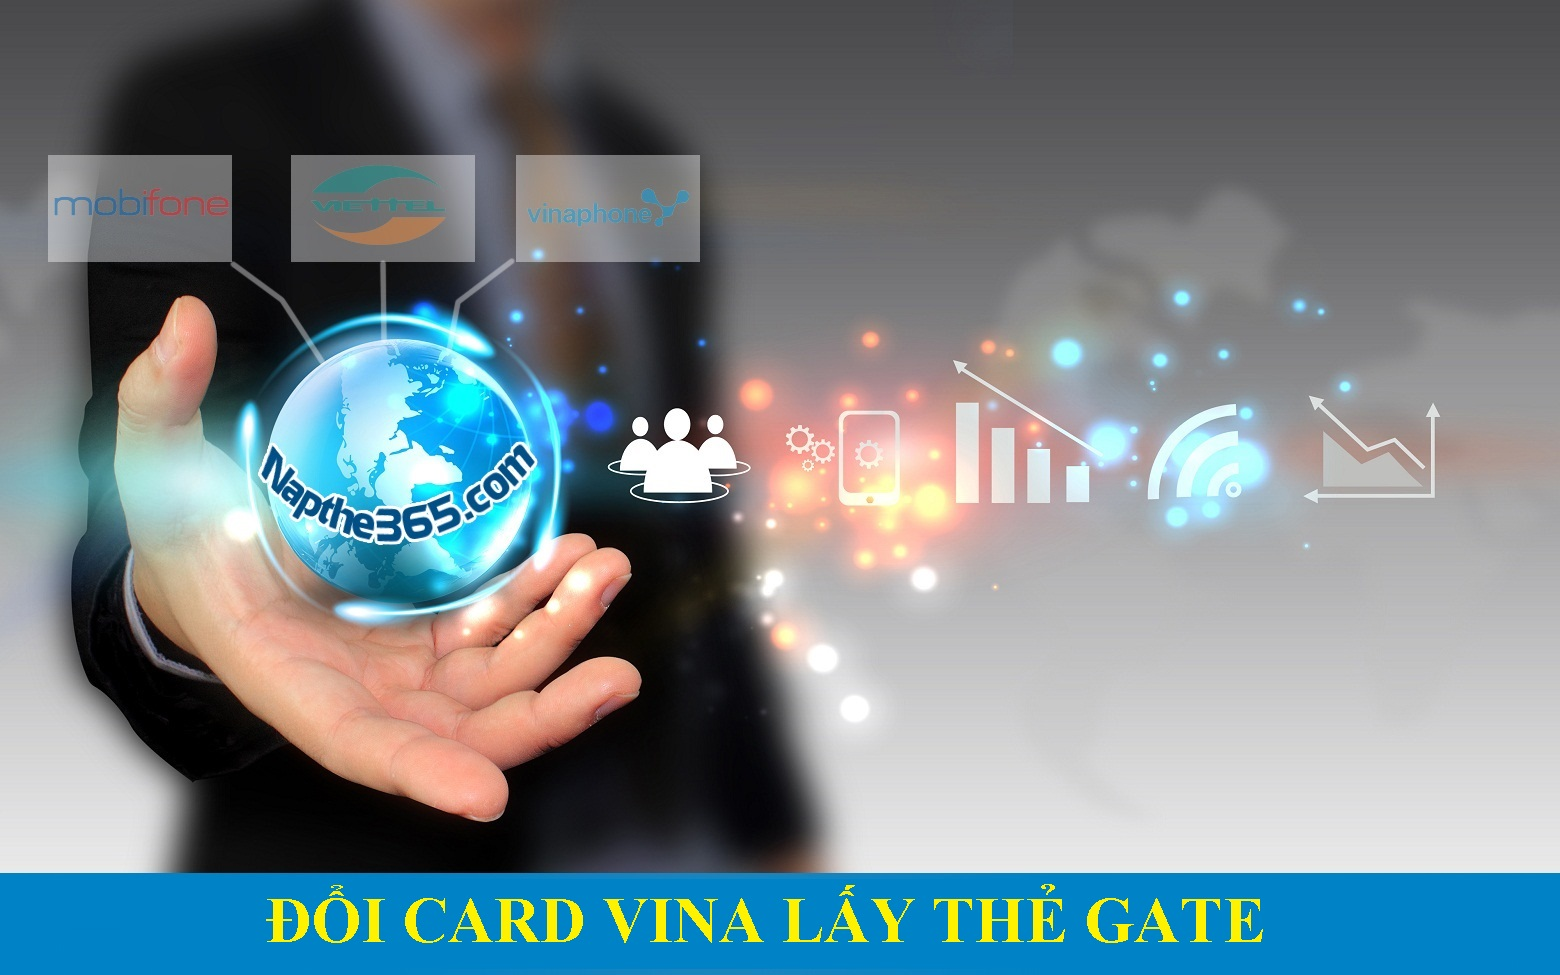 doi-card-vina-lay-the-gate-1